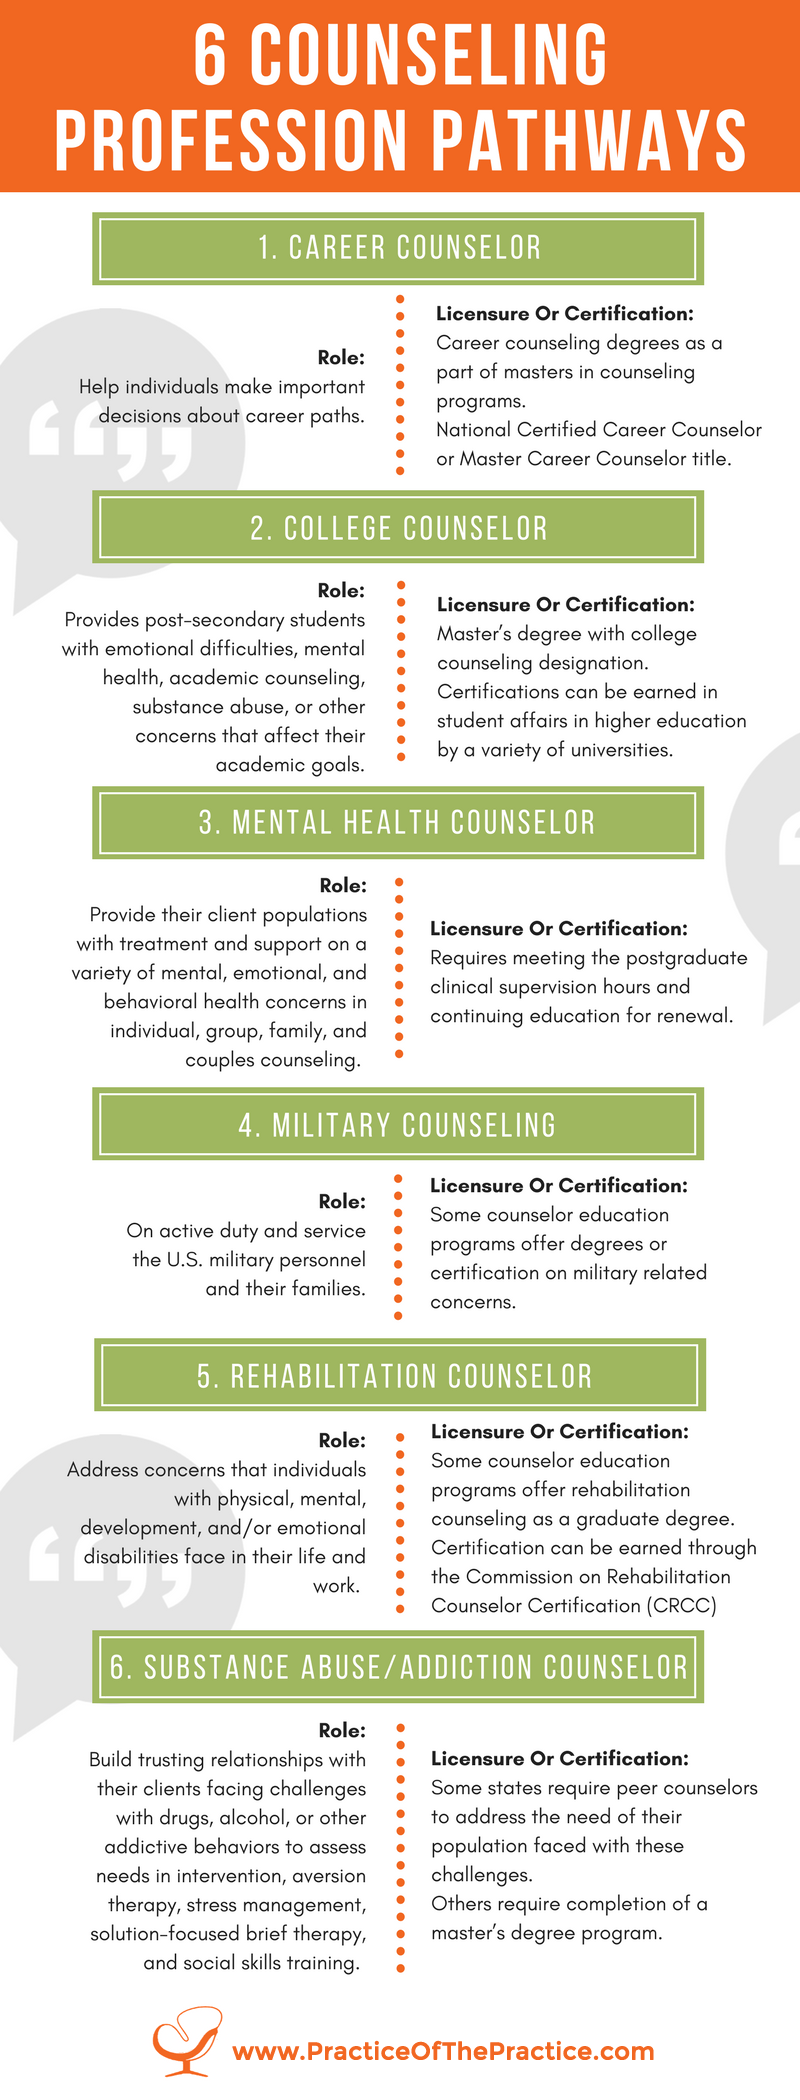 Counseling Profession Pathways Begin Change Or Refresh Your